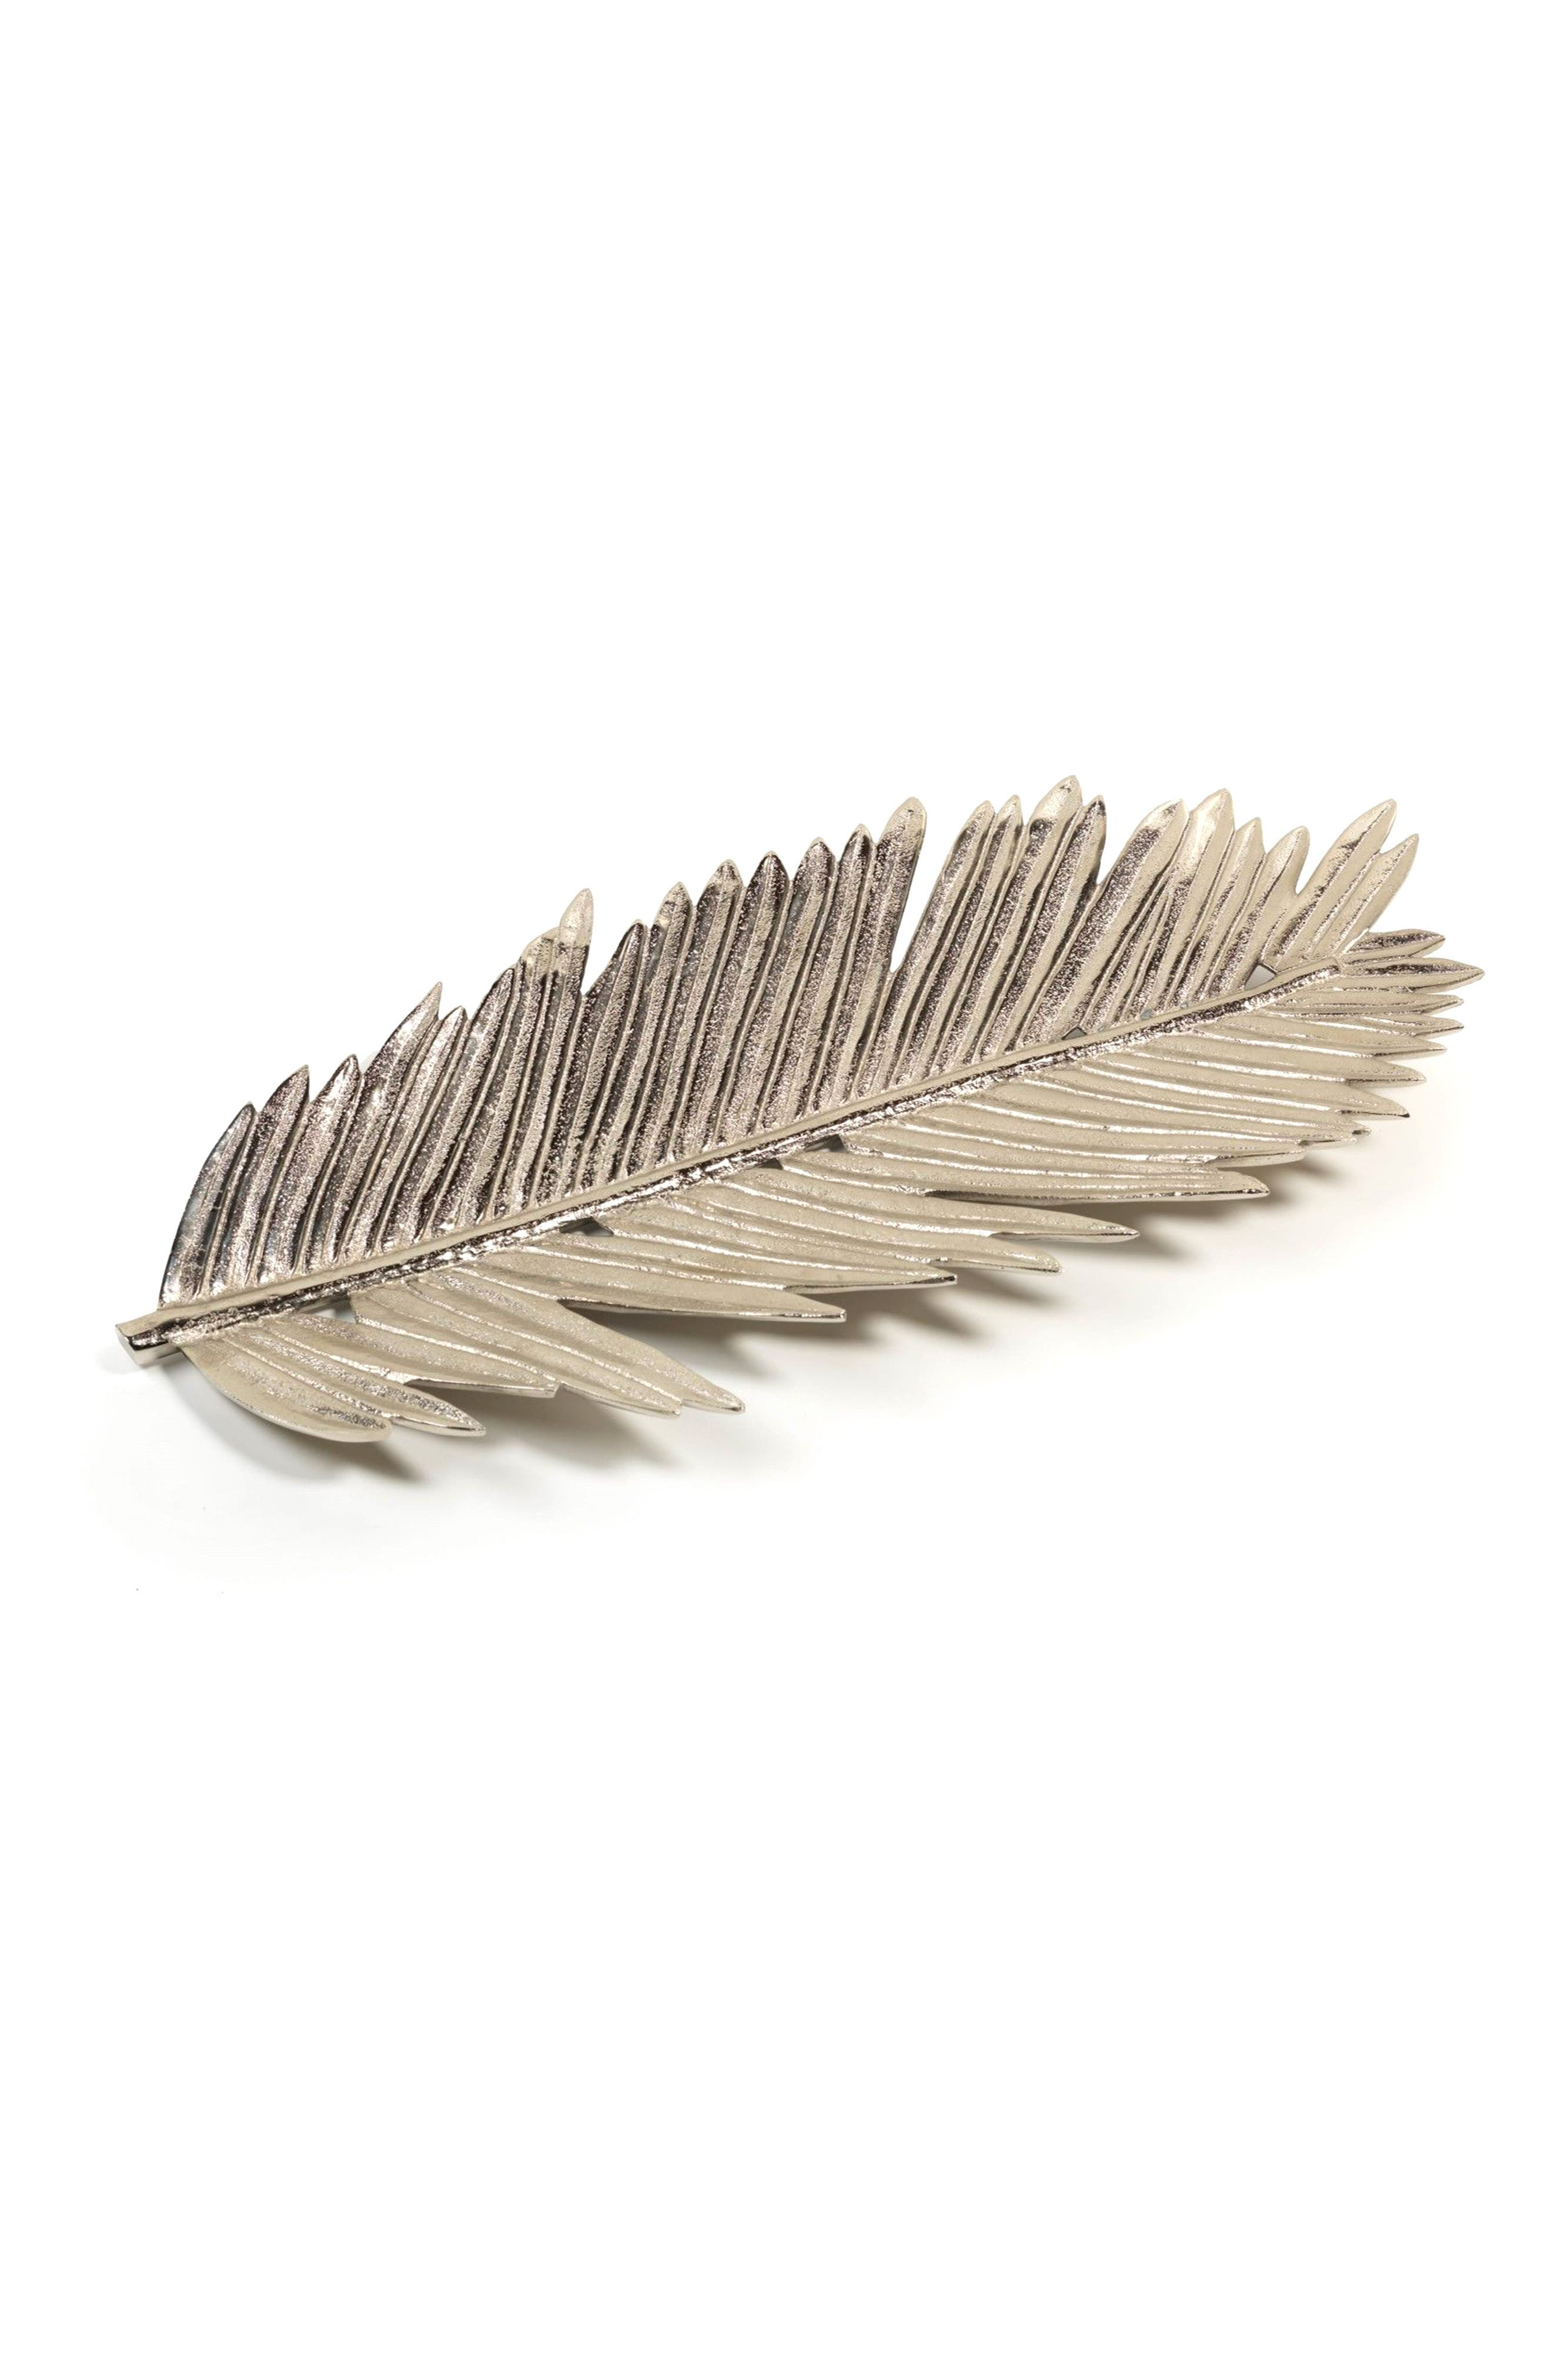 Main Image - Zodax Pinnate Feather Palm Decorative Tray